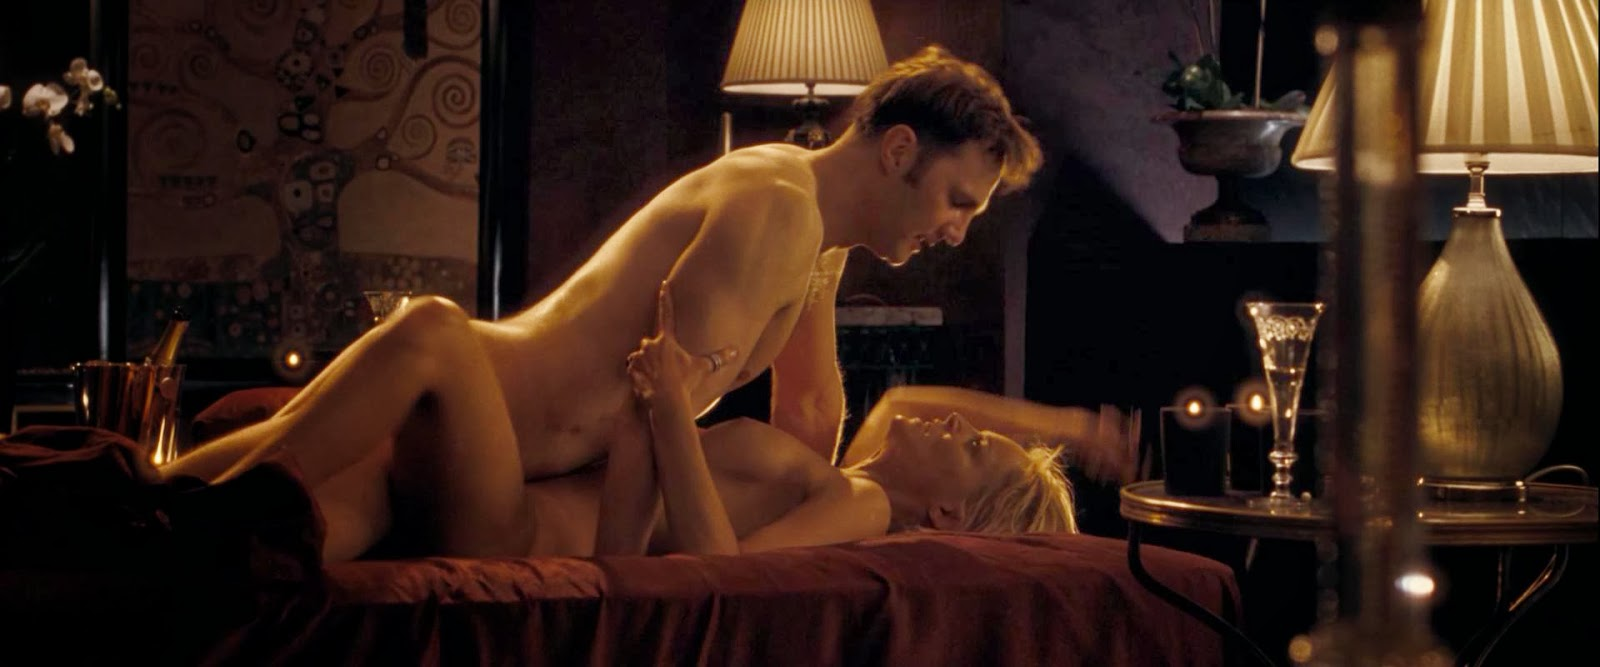 Congratulate, David morrissey naked video that